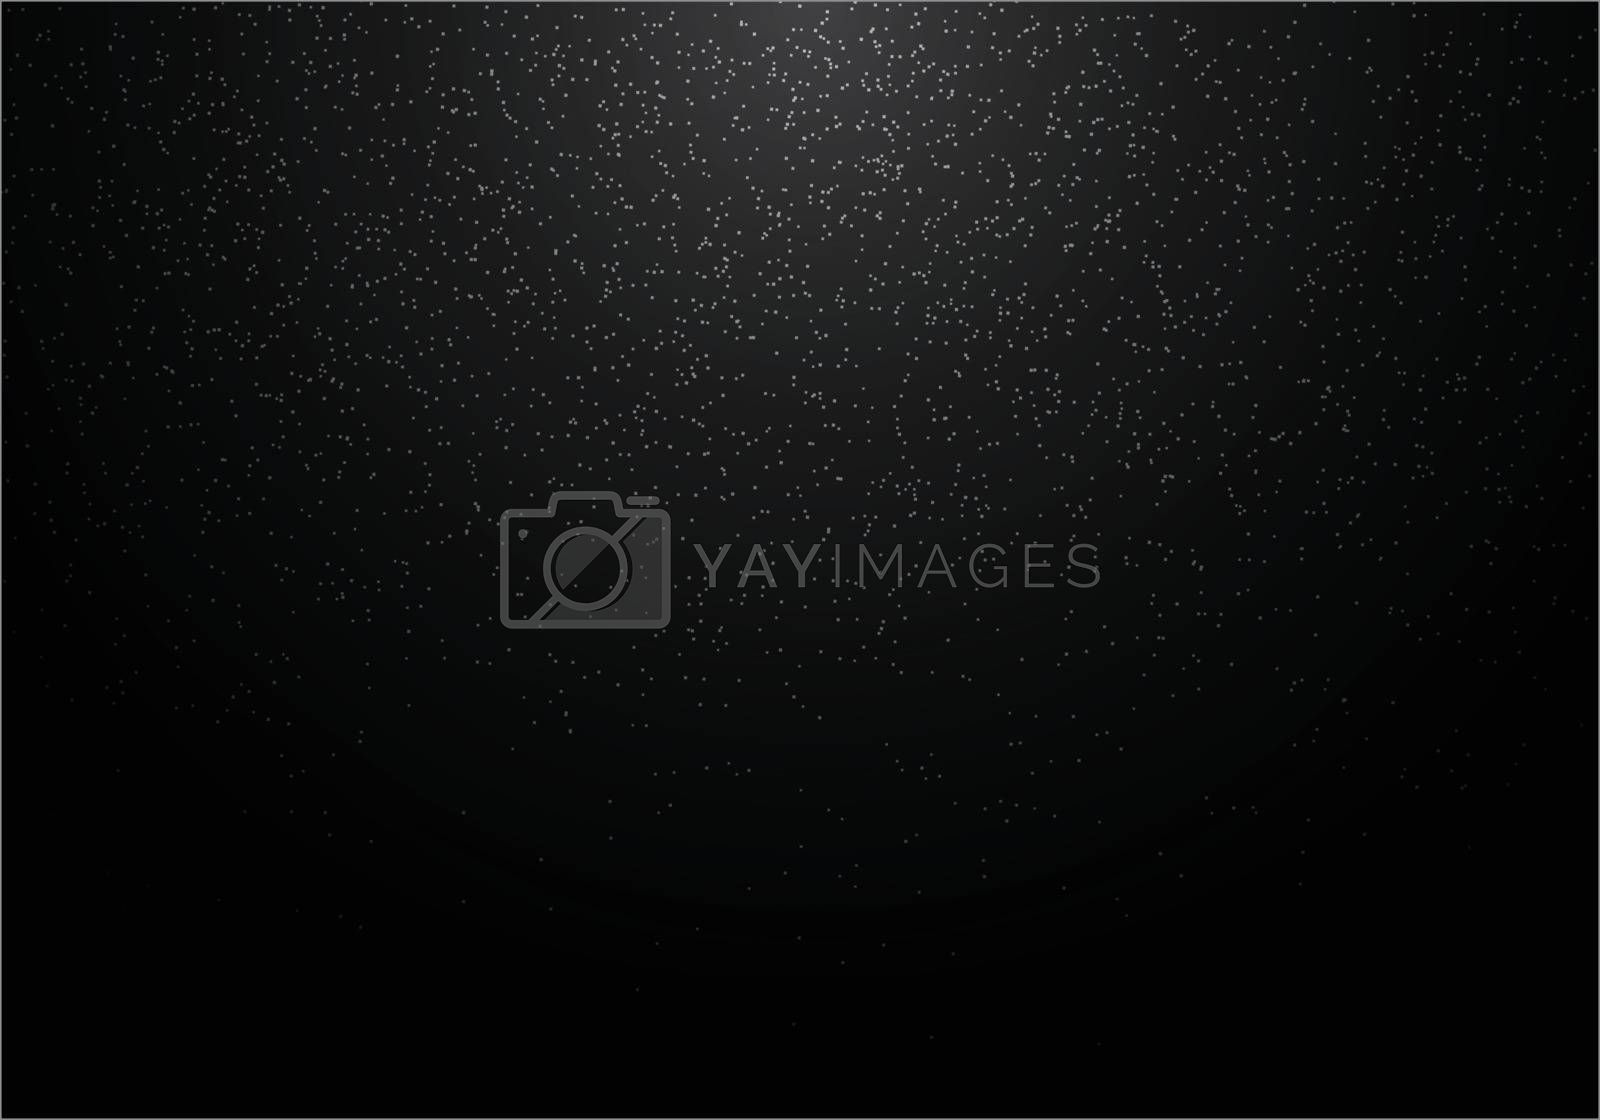 Abstract white glitter on black background. Snow falling. Vector illustration